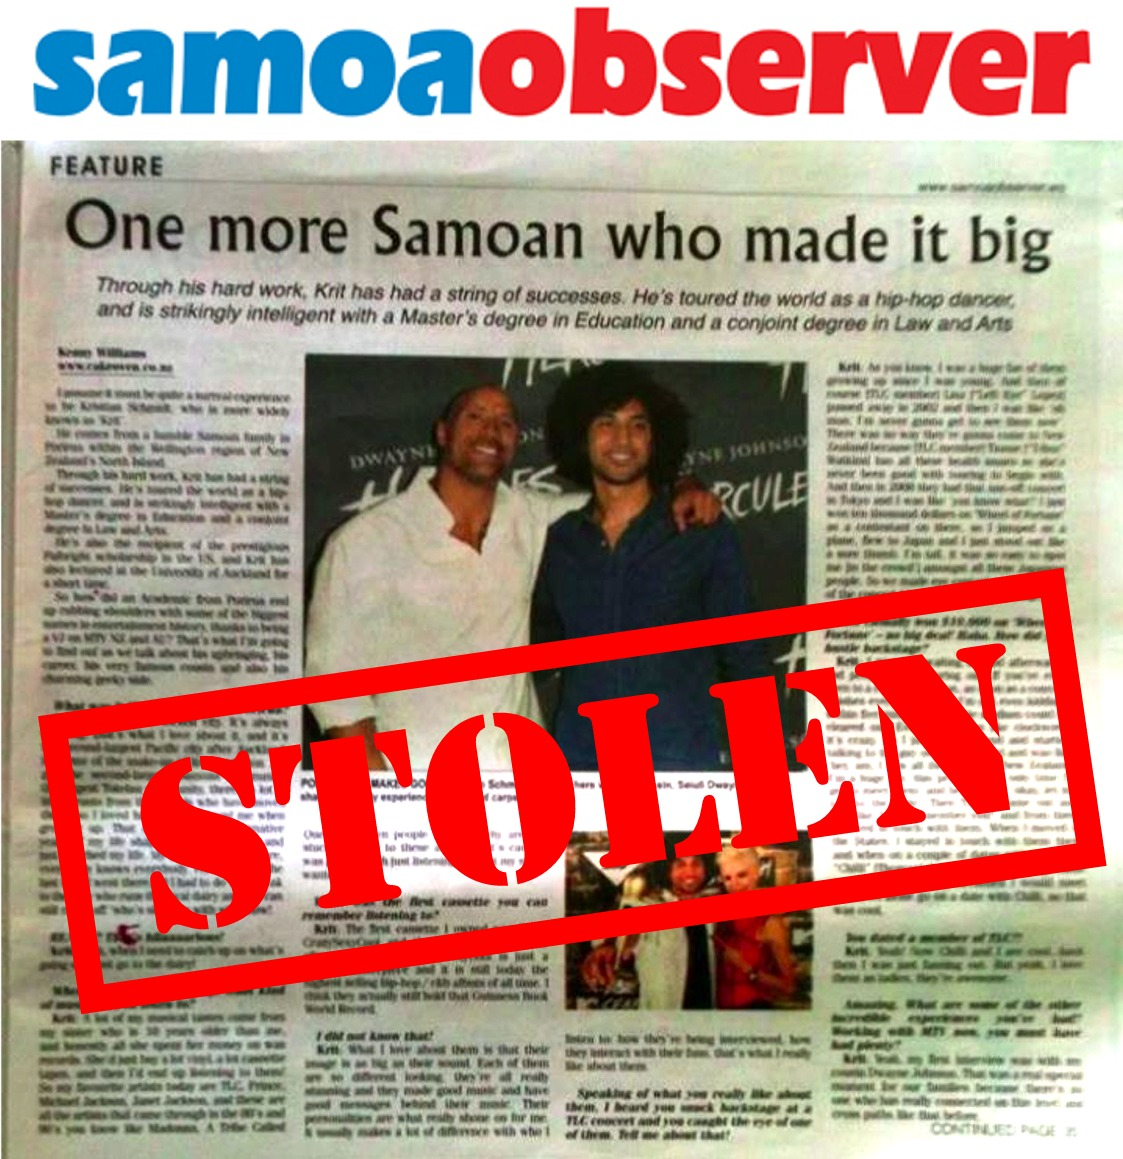 Observations on Samoa Observer